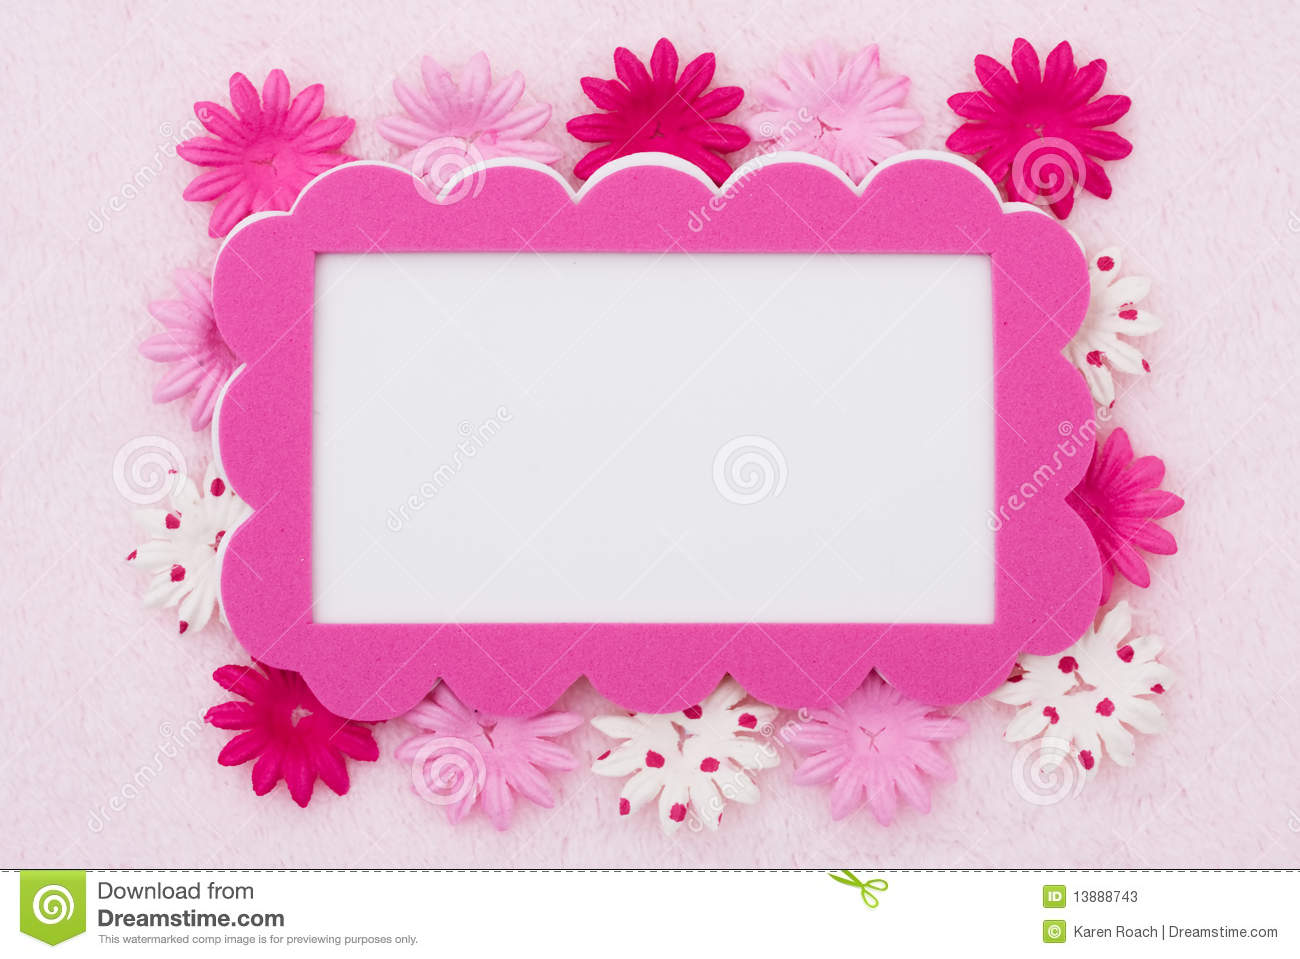 Pink flower border stock image image of border space 13888743 pink flower border mightylinksfo Images